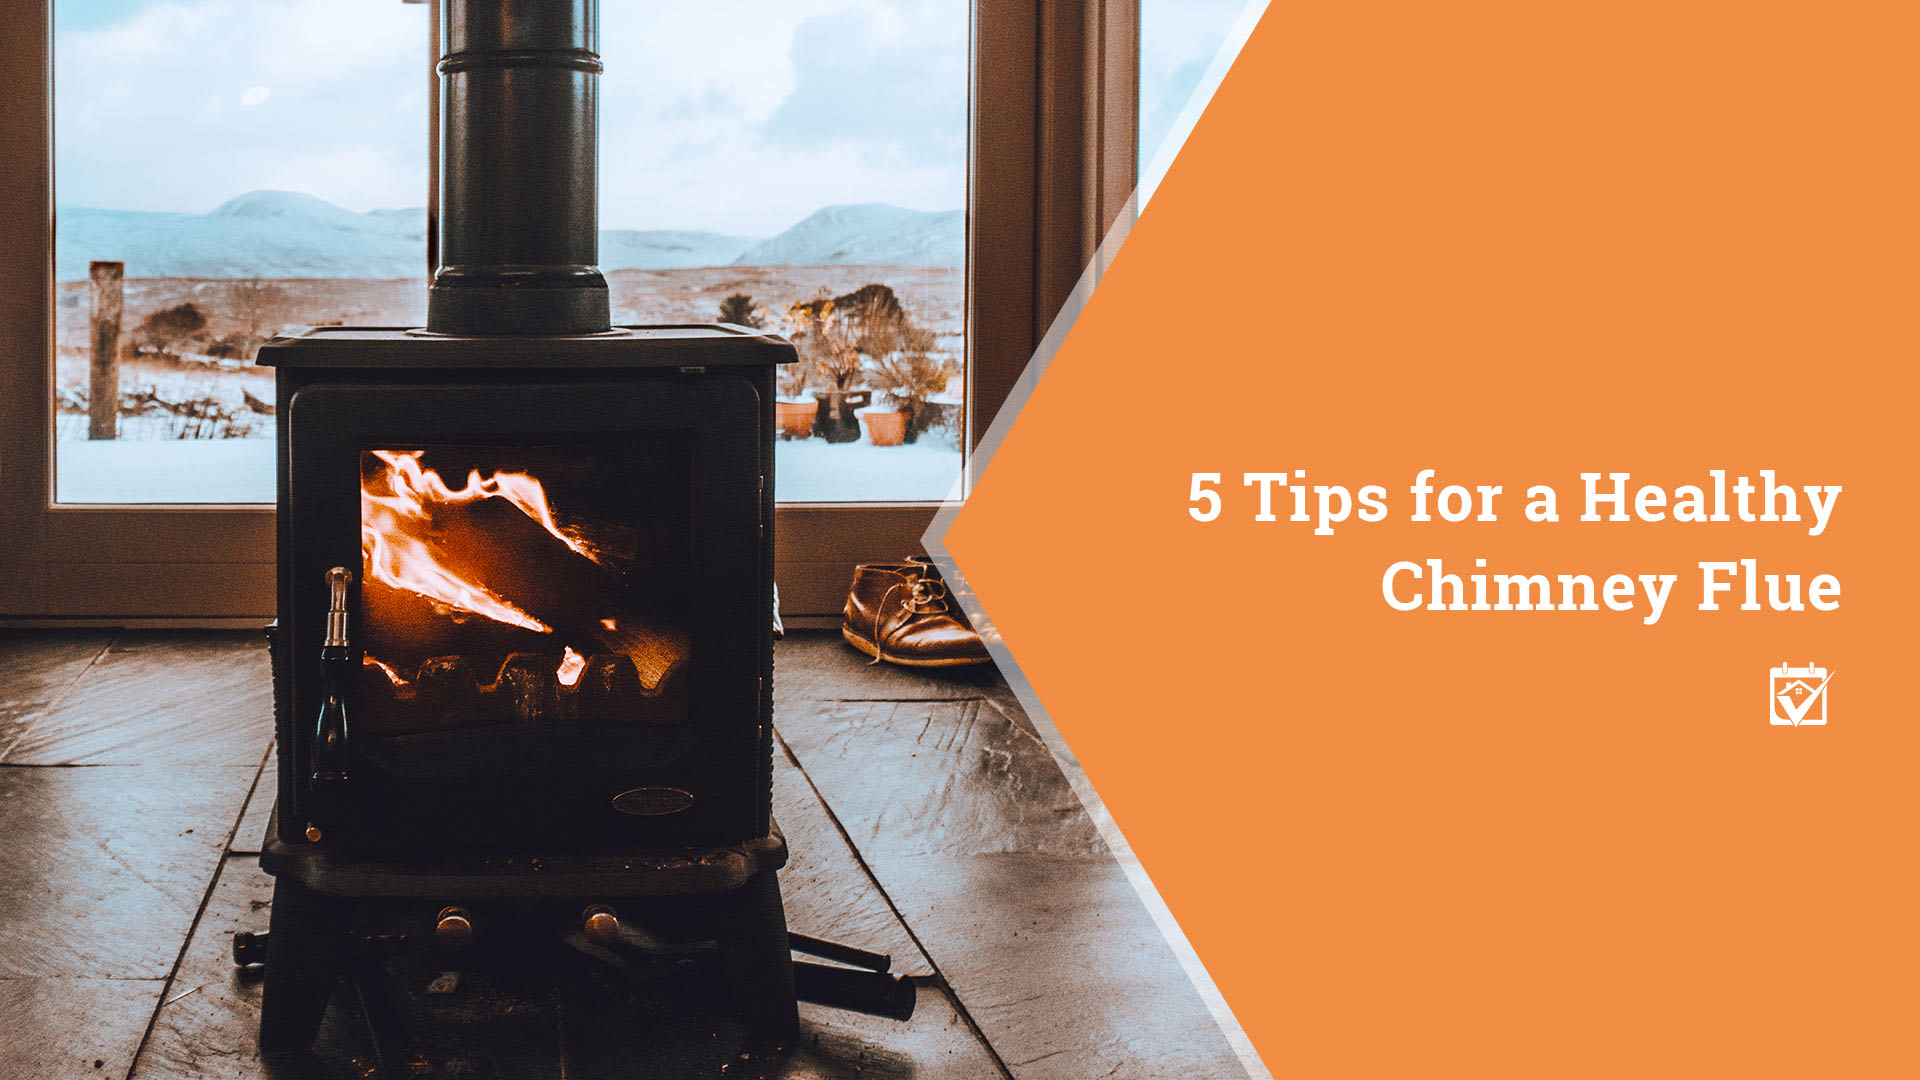 5 Tips for a Healthy Chimney Flue